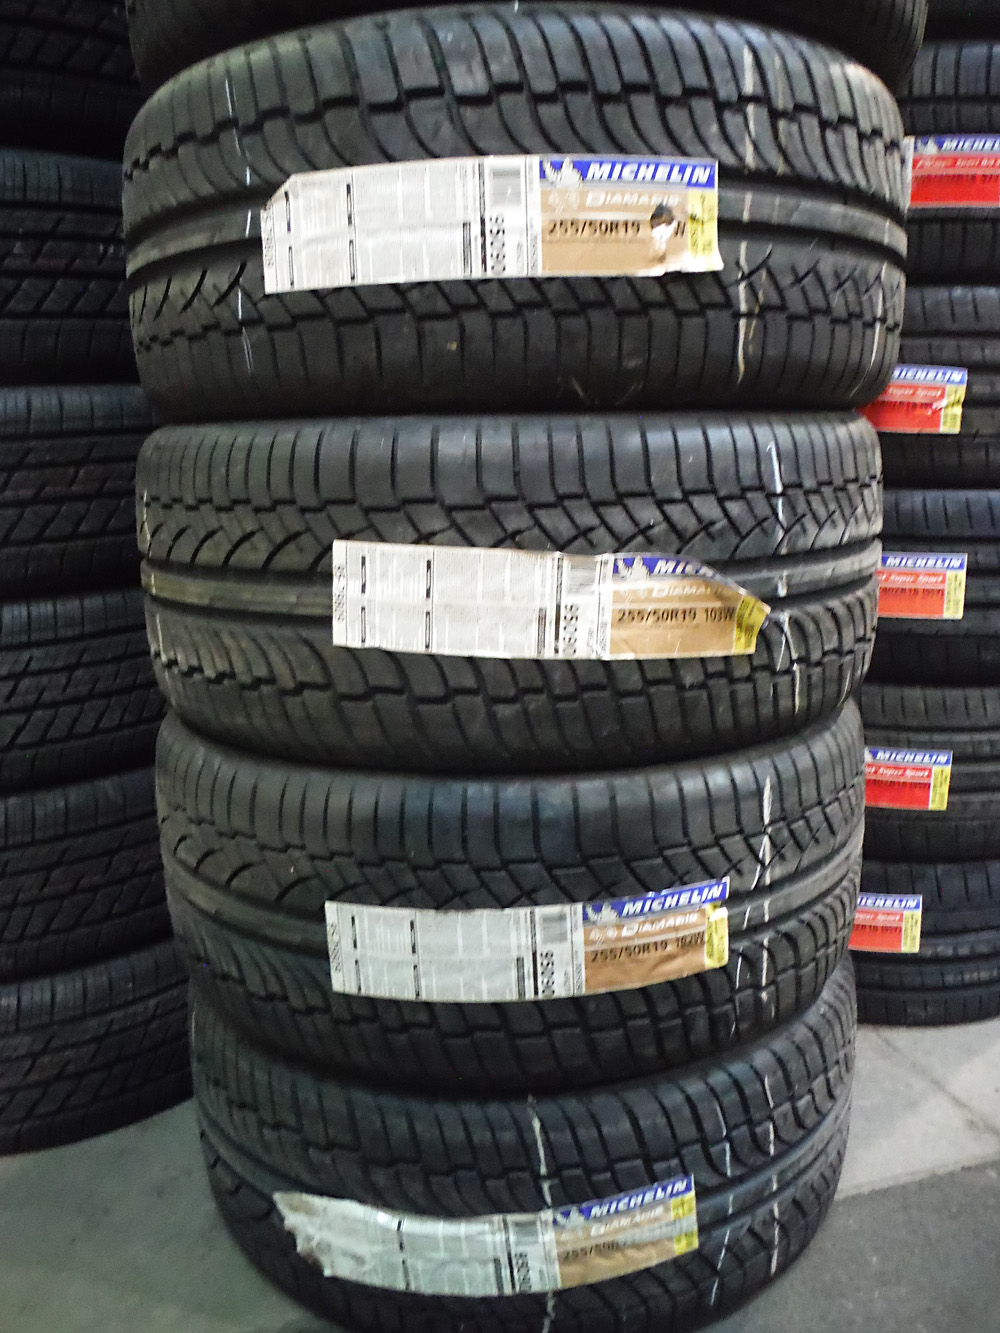 Michelin Diamaris tires for sale